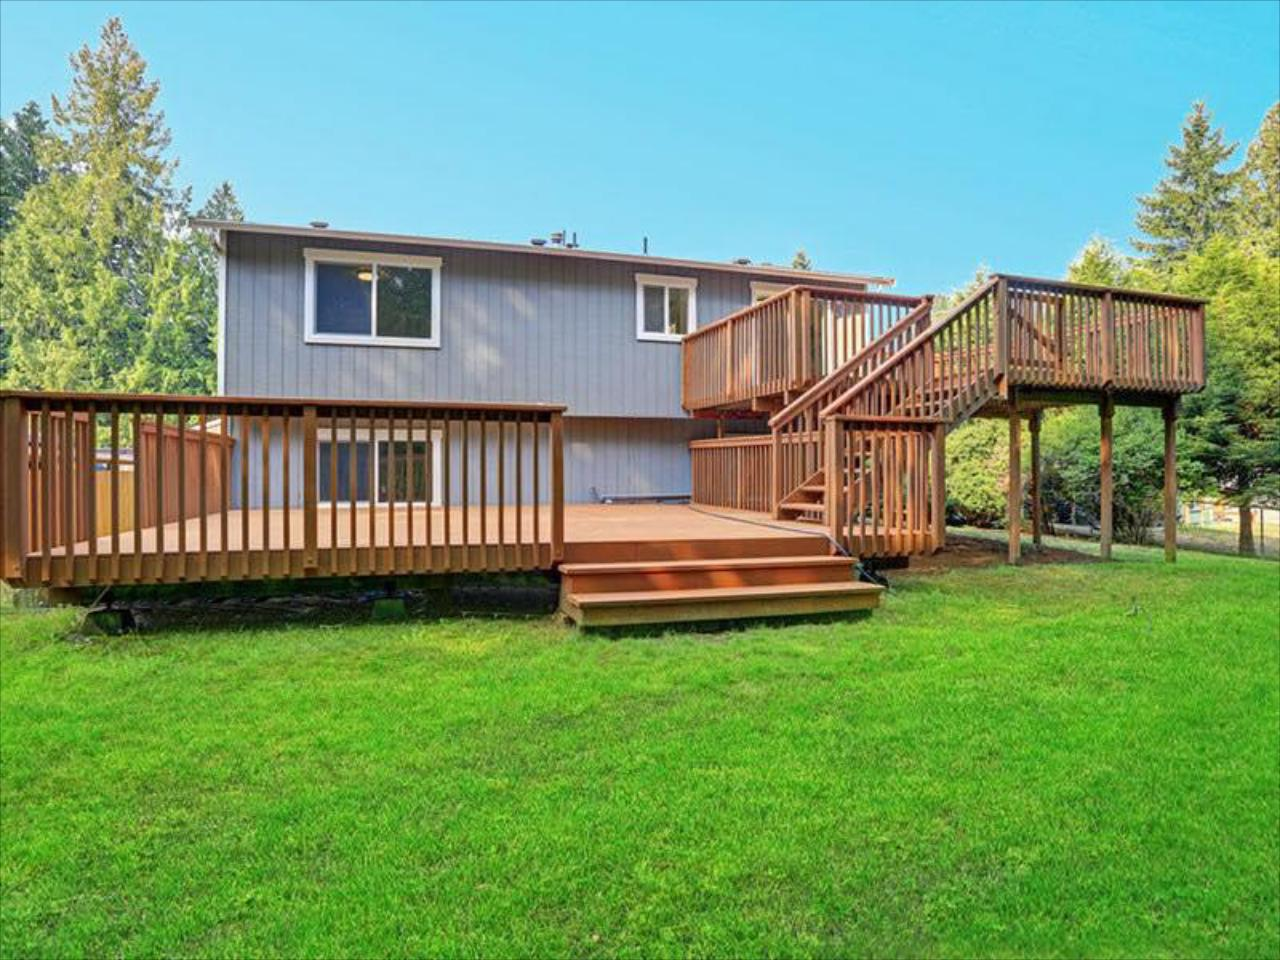 We specialize in building single and multi-layer decks